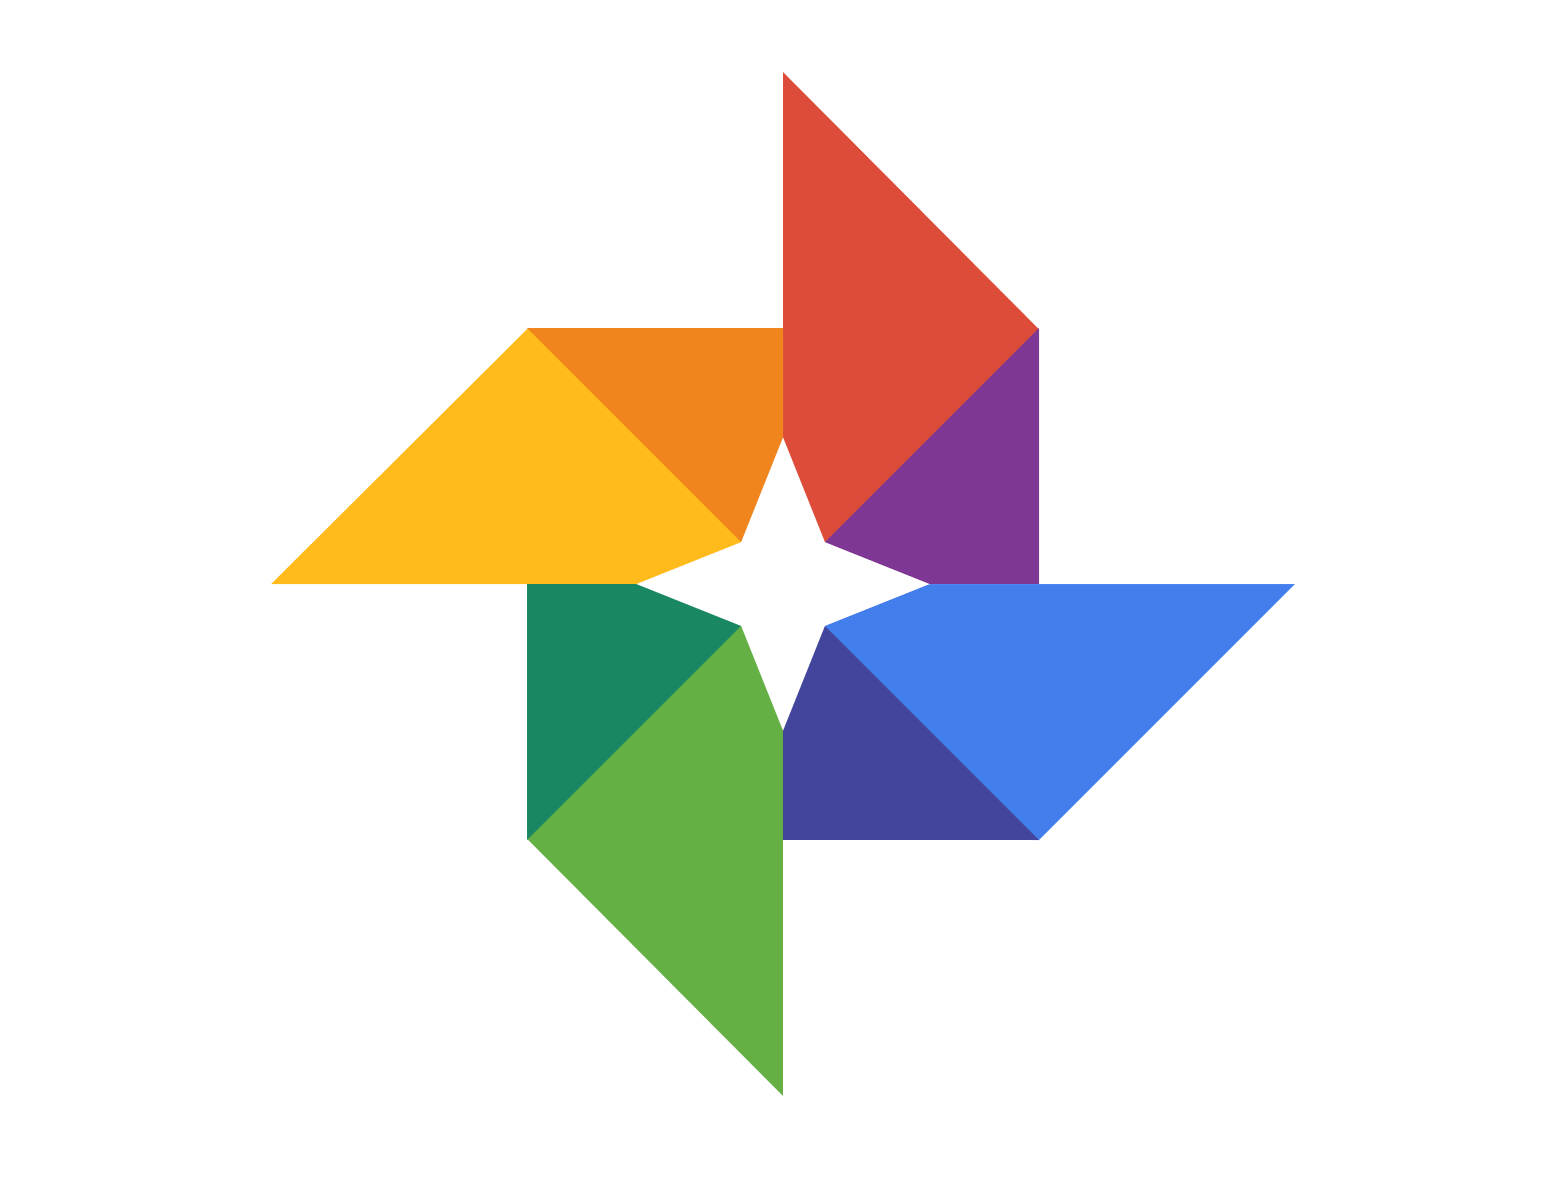 File:Google-Photos-icon-logo.png - Google Photos PNG